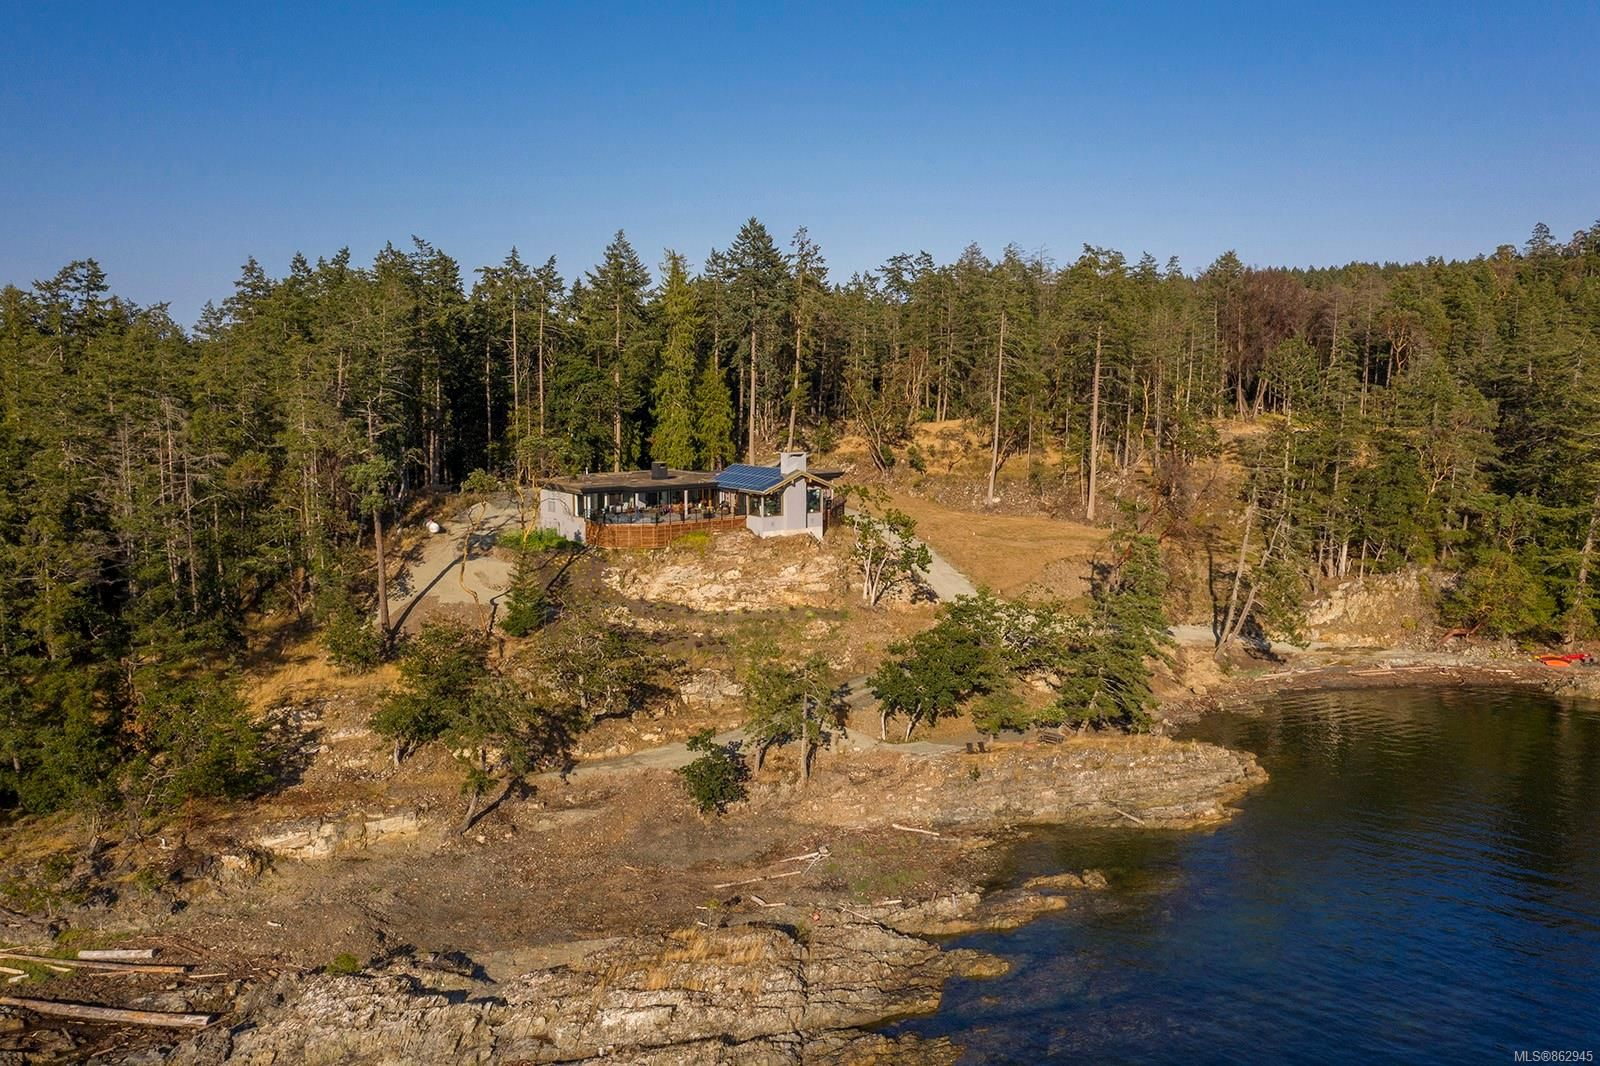 Photo 15: Photos: 1675 Claudet Rd in : PQ Nanoose House for sale (Parksville/Qualicum)  : MLS®# 862945